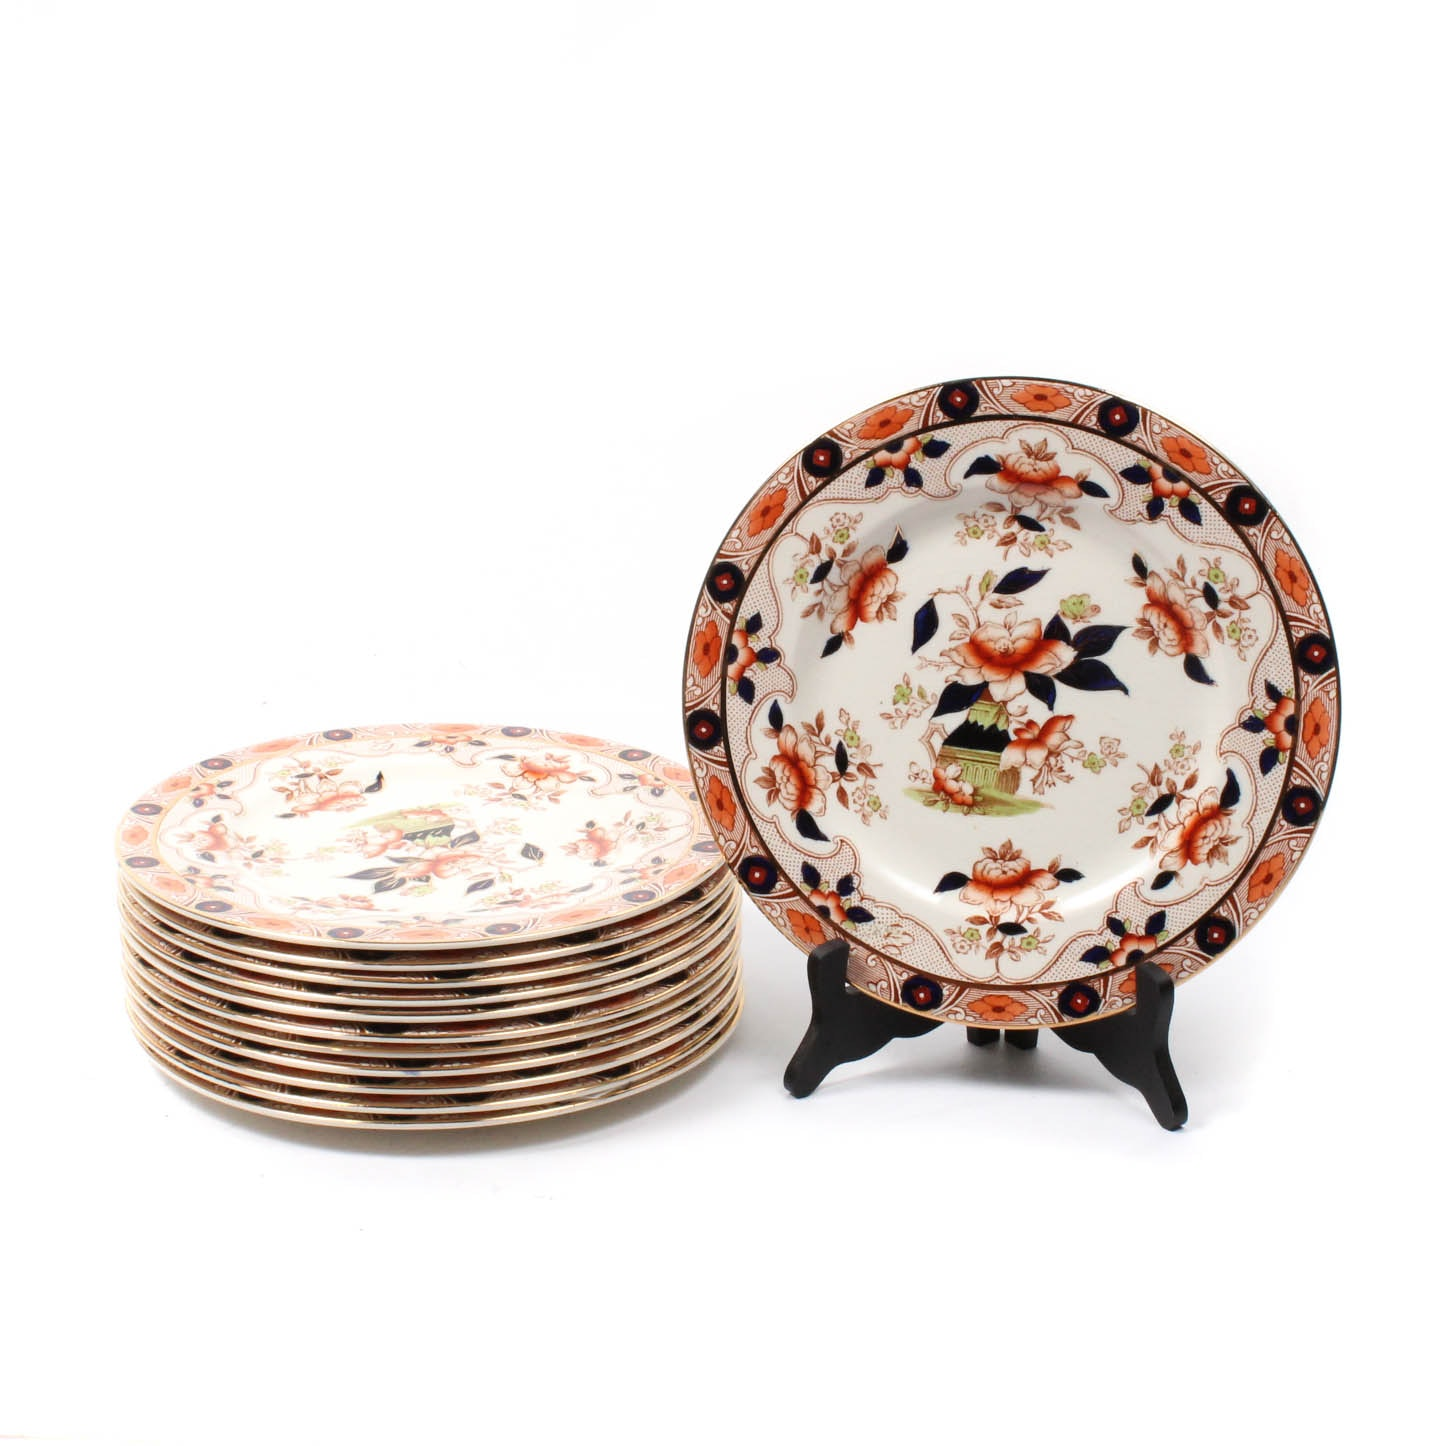 "Burgess & Leigh ""Old Derby"" Earthenware Imari Palette Dinner Plates"